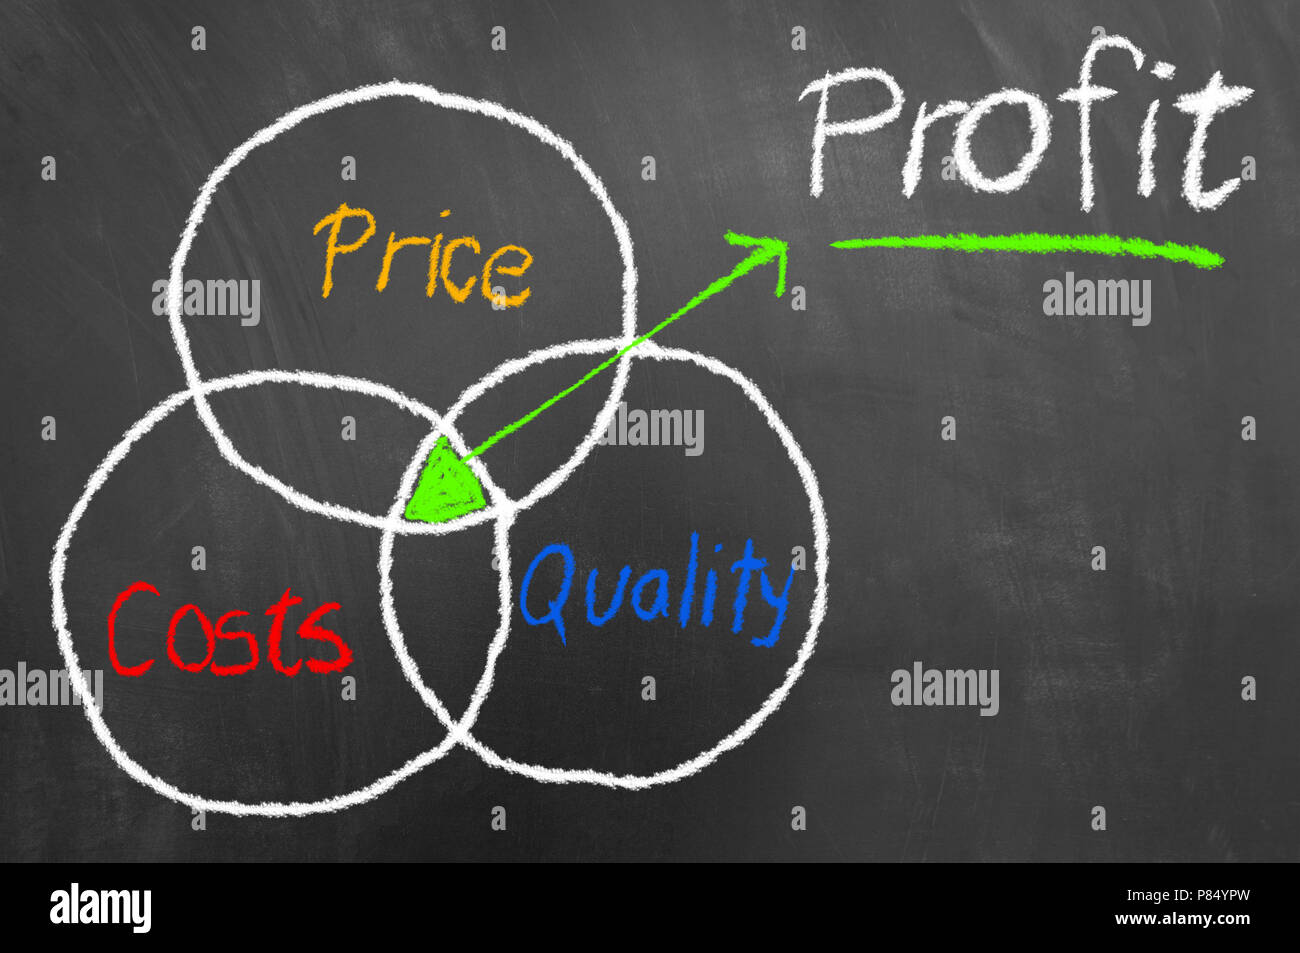 Profit scheme concept as overlap intersection of price costs and quality circles on blackboard or chalkboard made with colorful chalk - Stock Image